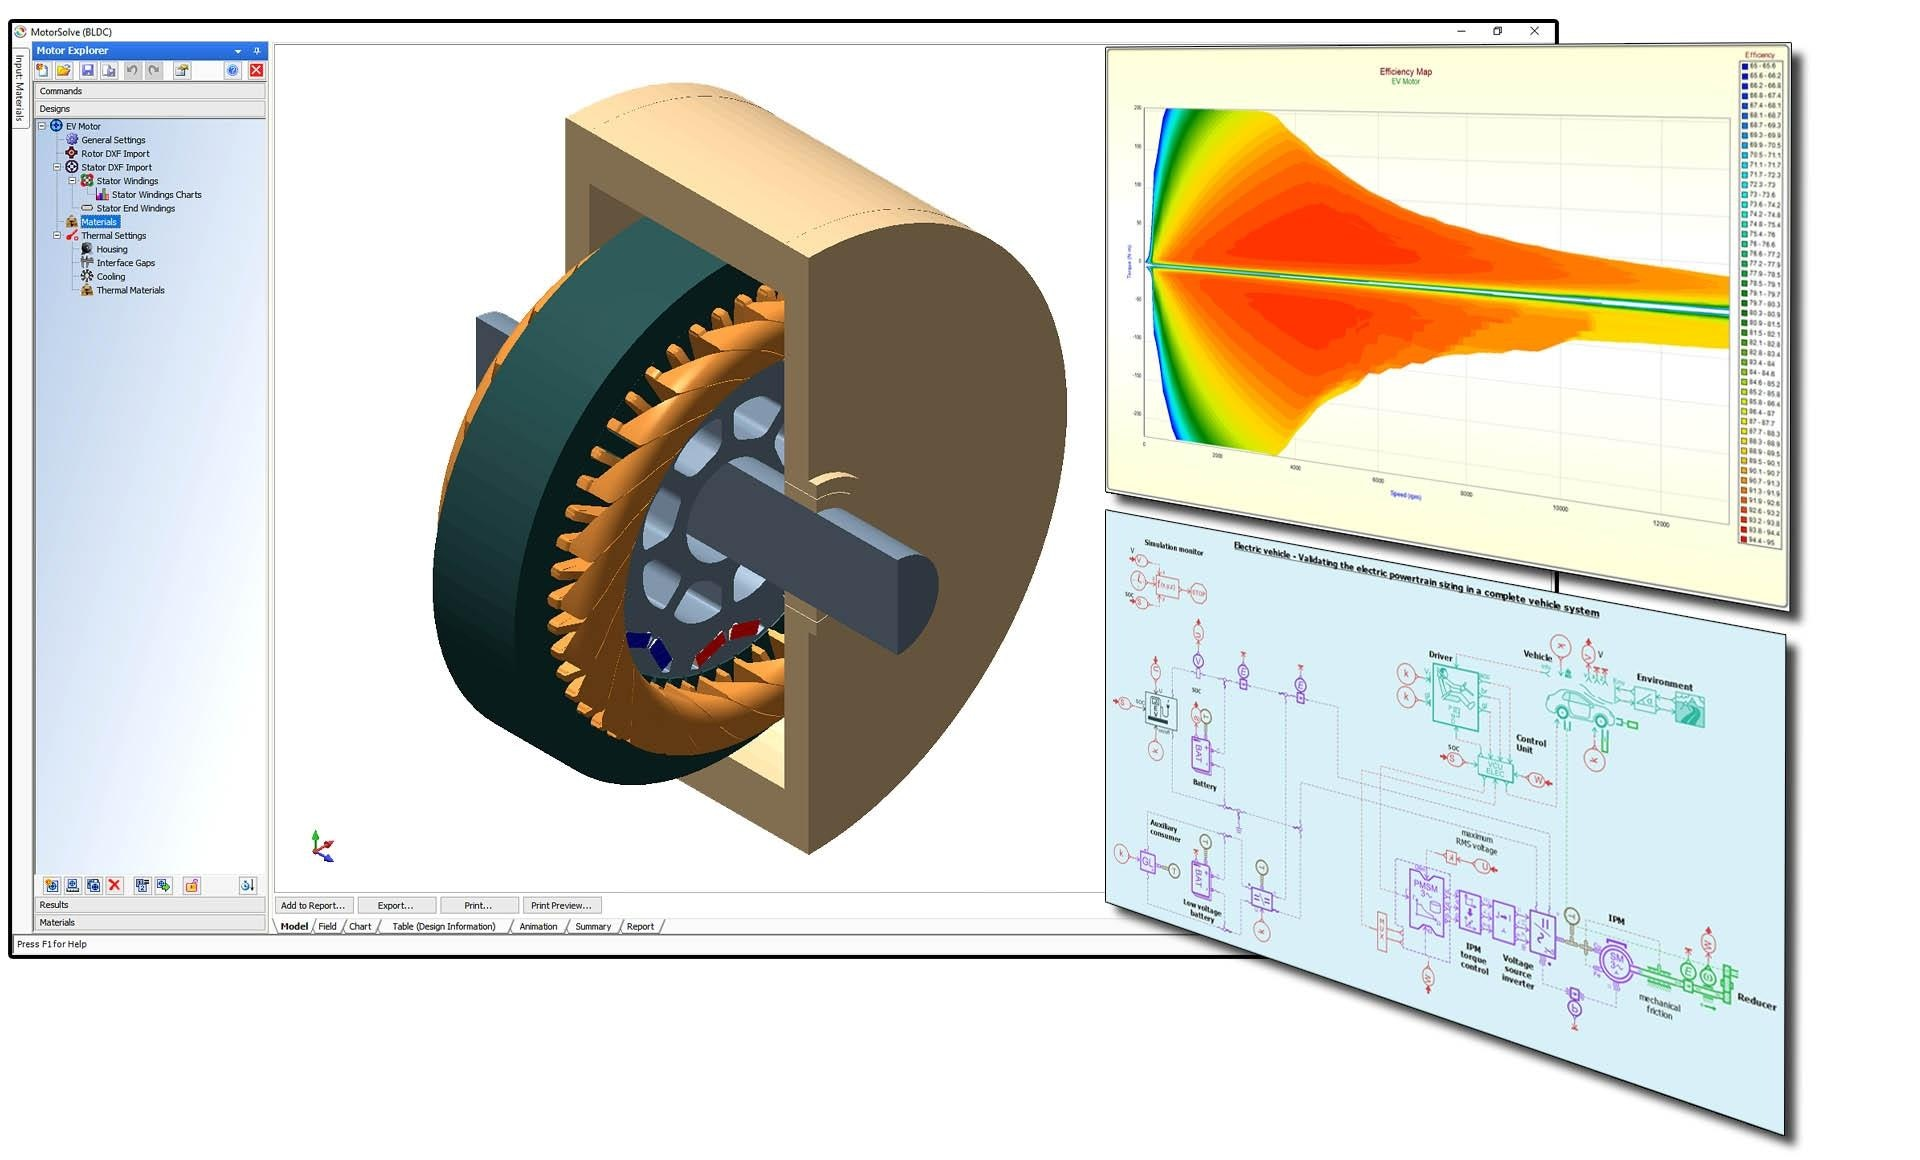 Image Ede Ee on Cad Consulting Services